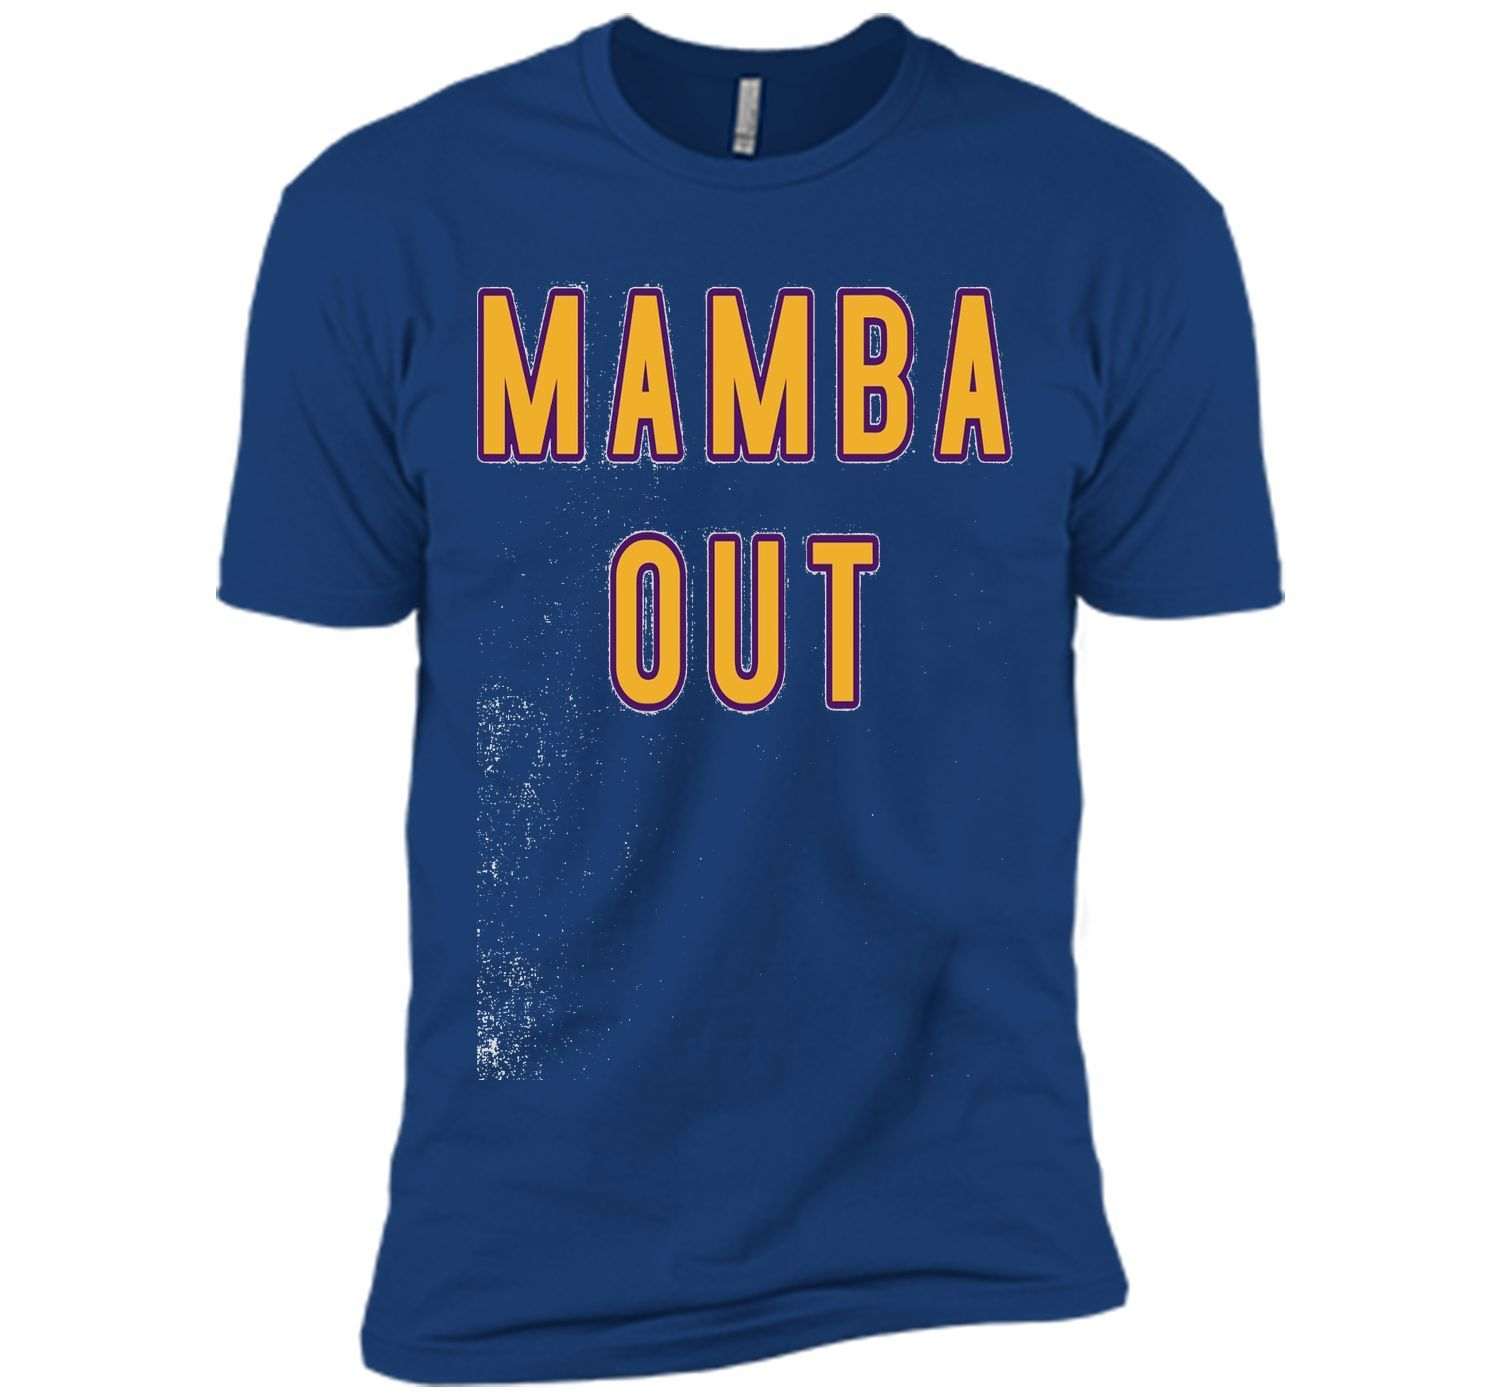 Mamba Out Limited Edition Farewell Tribute T-Shirt